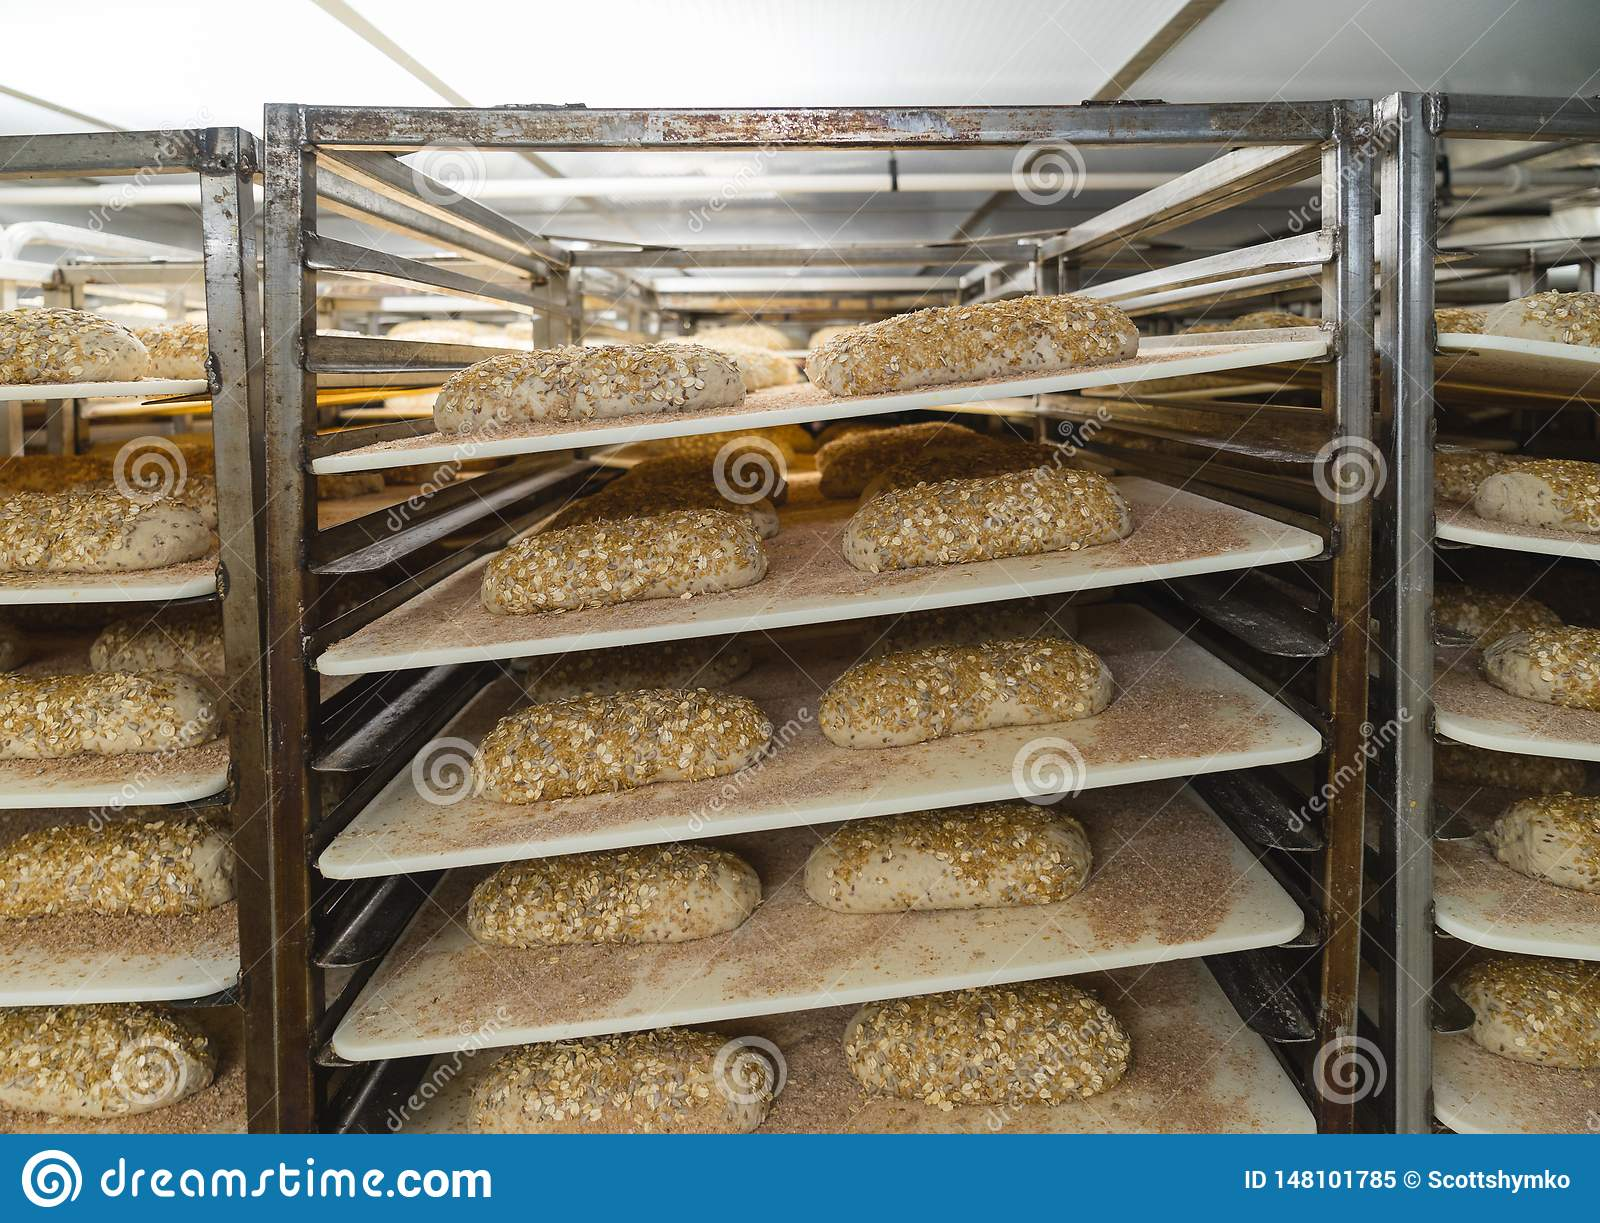 Loaves of bread in a proofing room